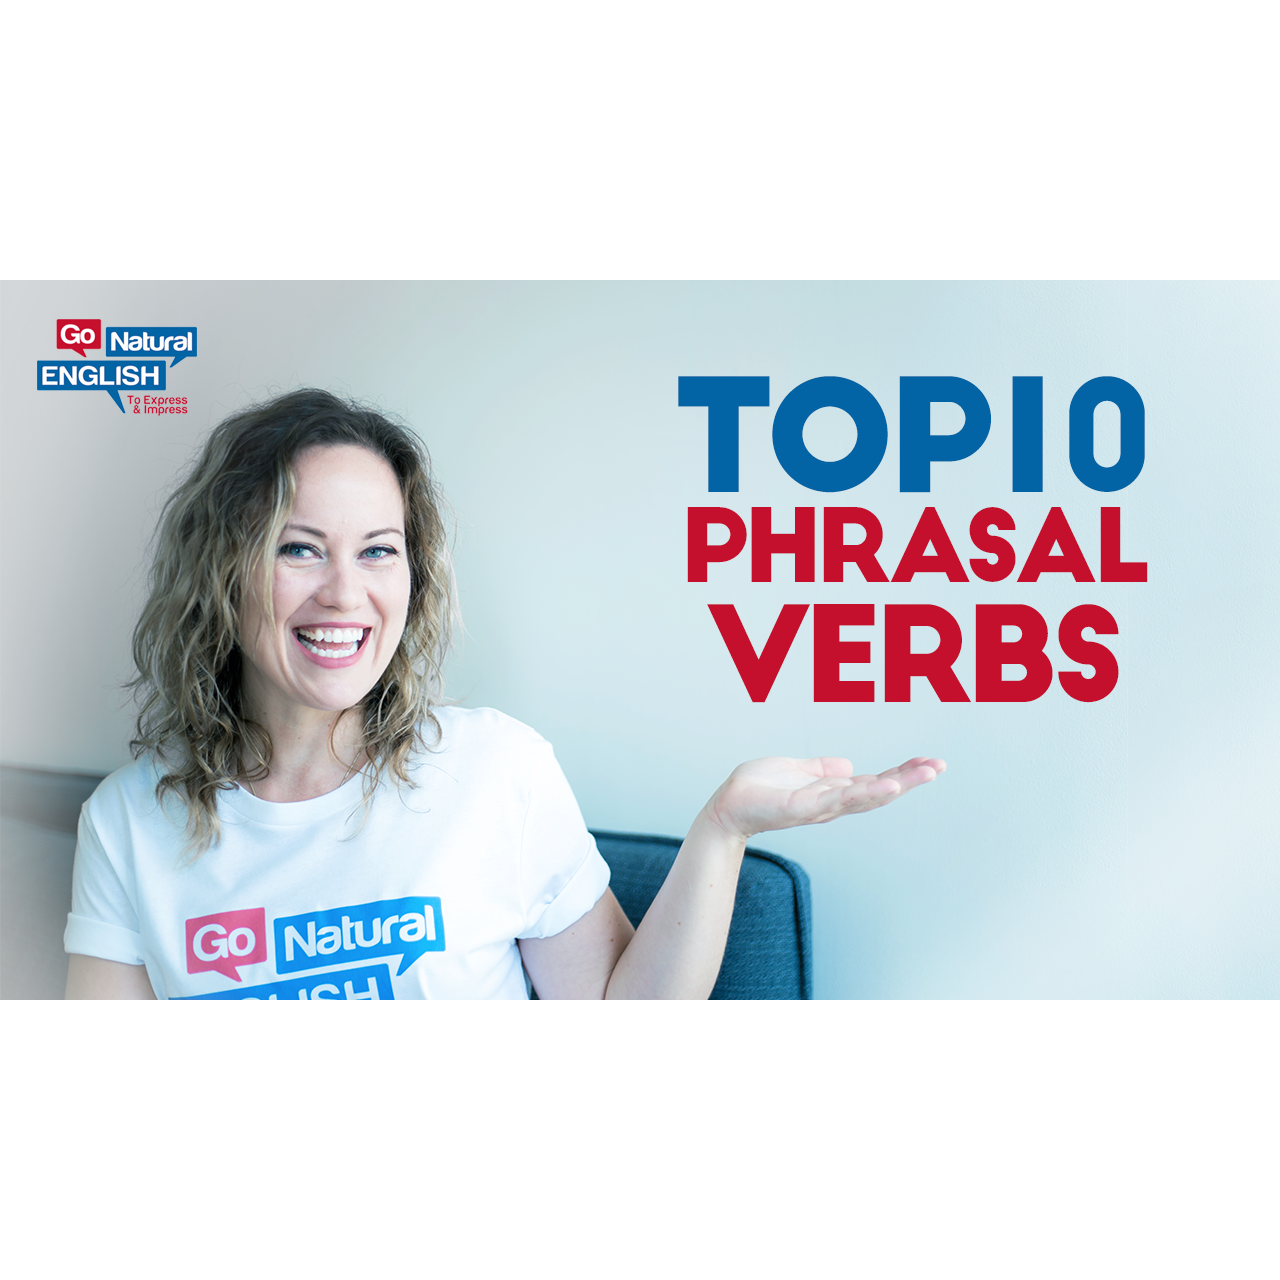 10 Phrasal Verbs You Need to Know for Fluency in English | Go